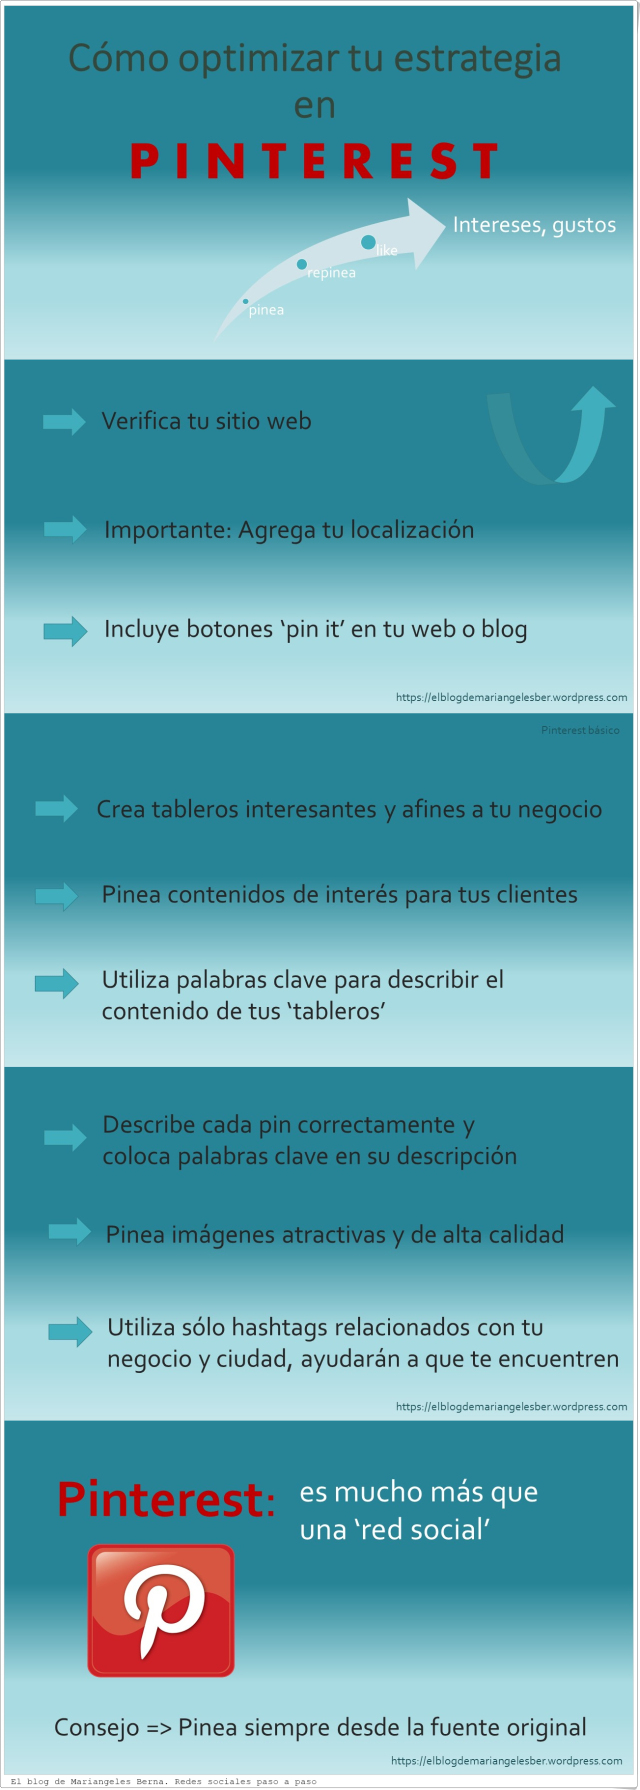 Cómo optimizar tu estrategia en Pinterest